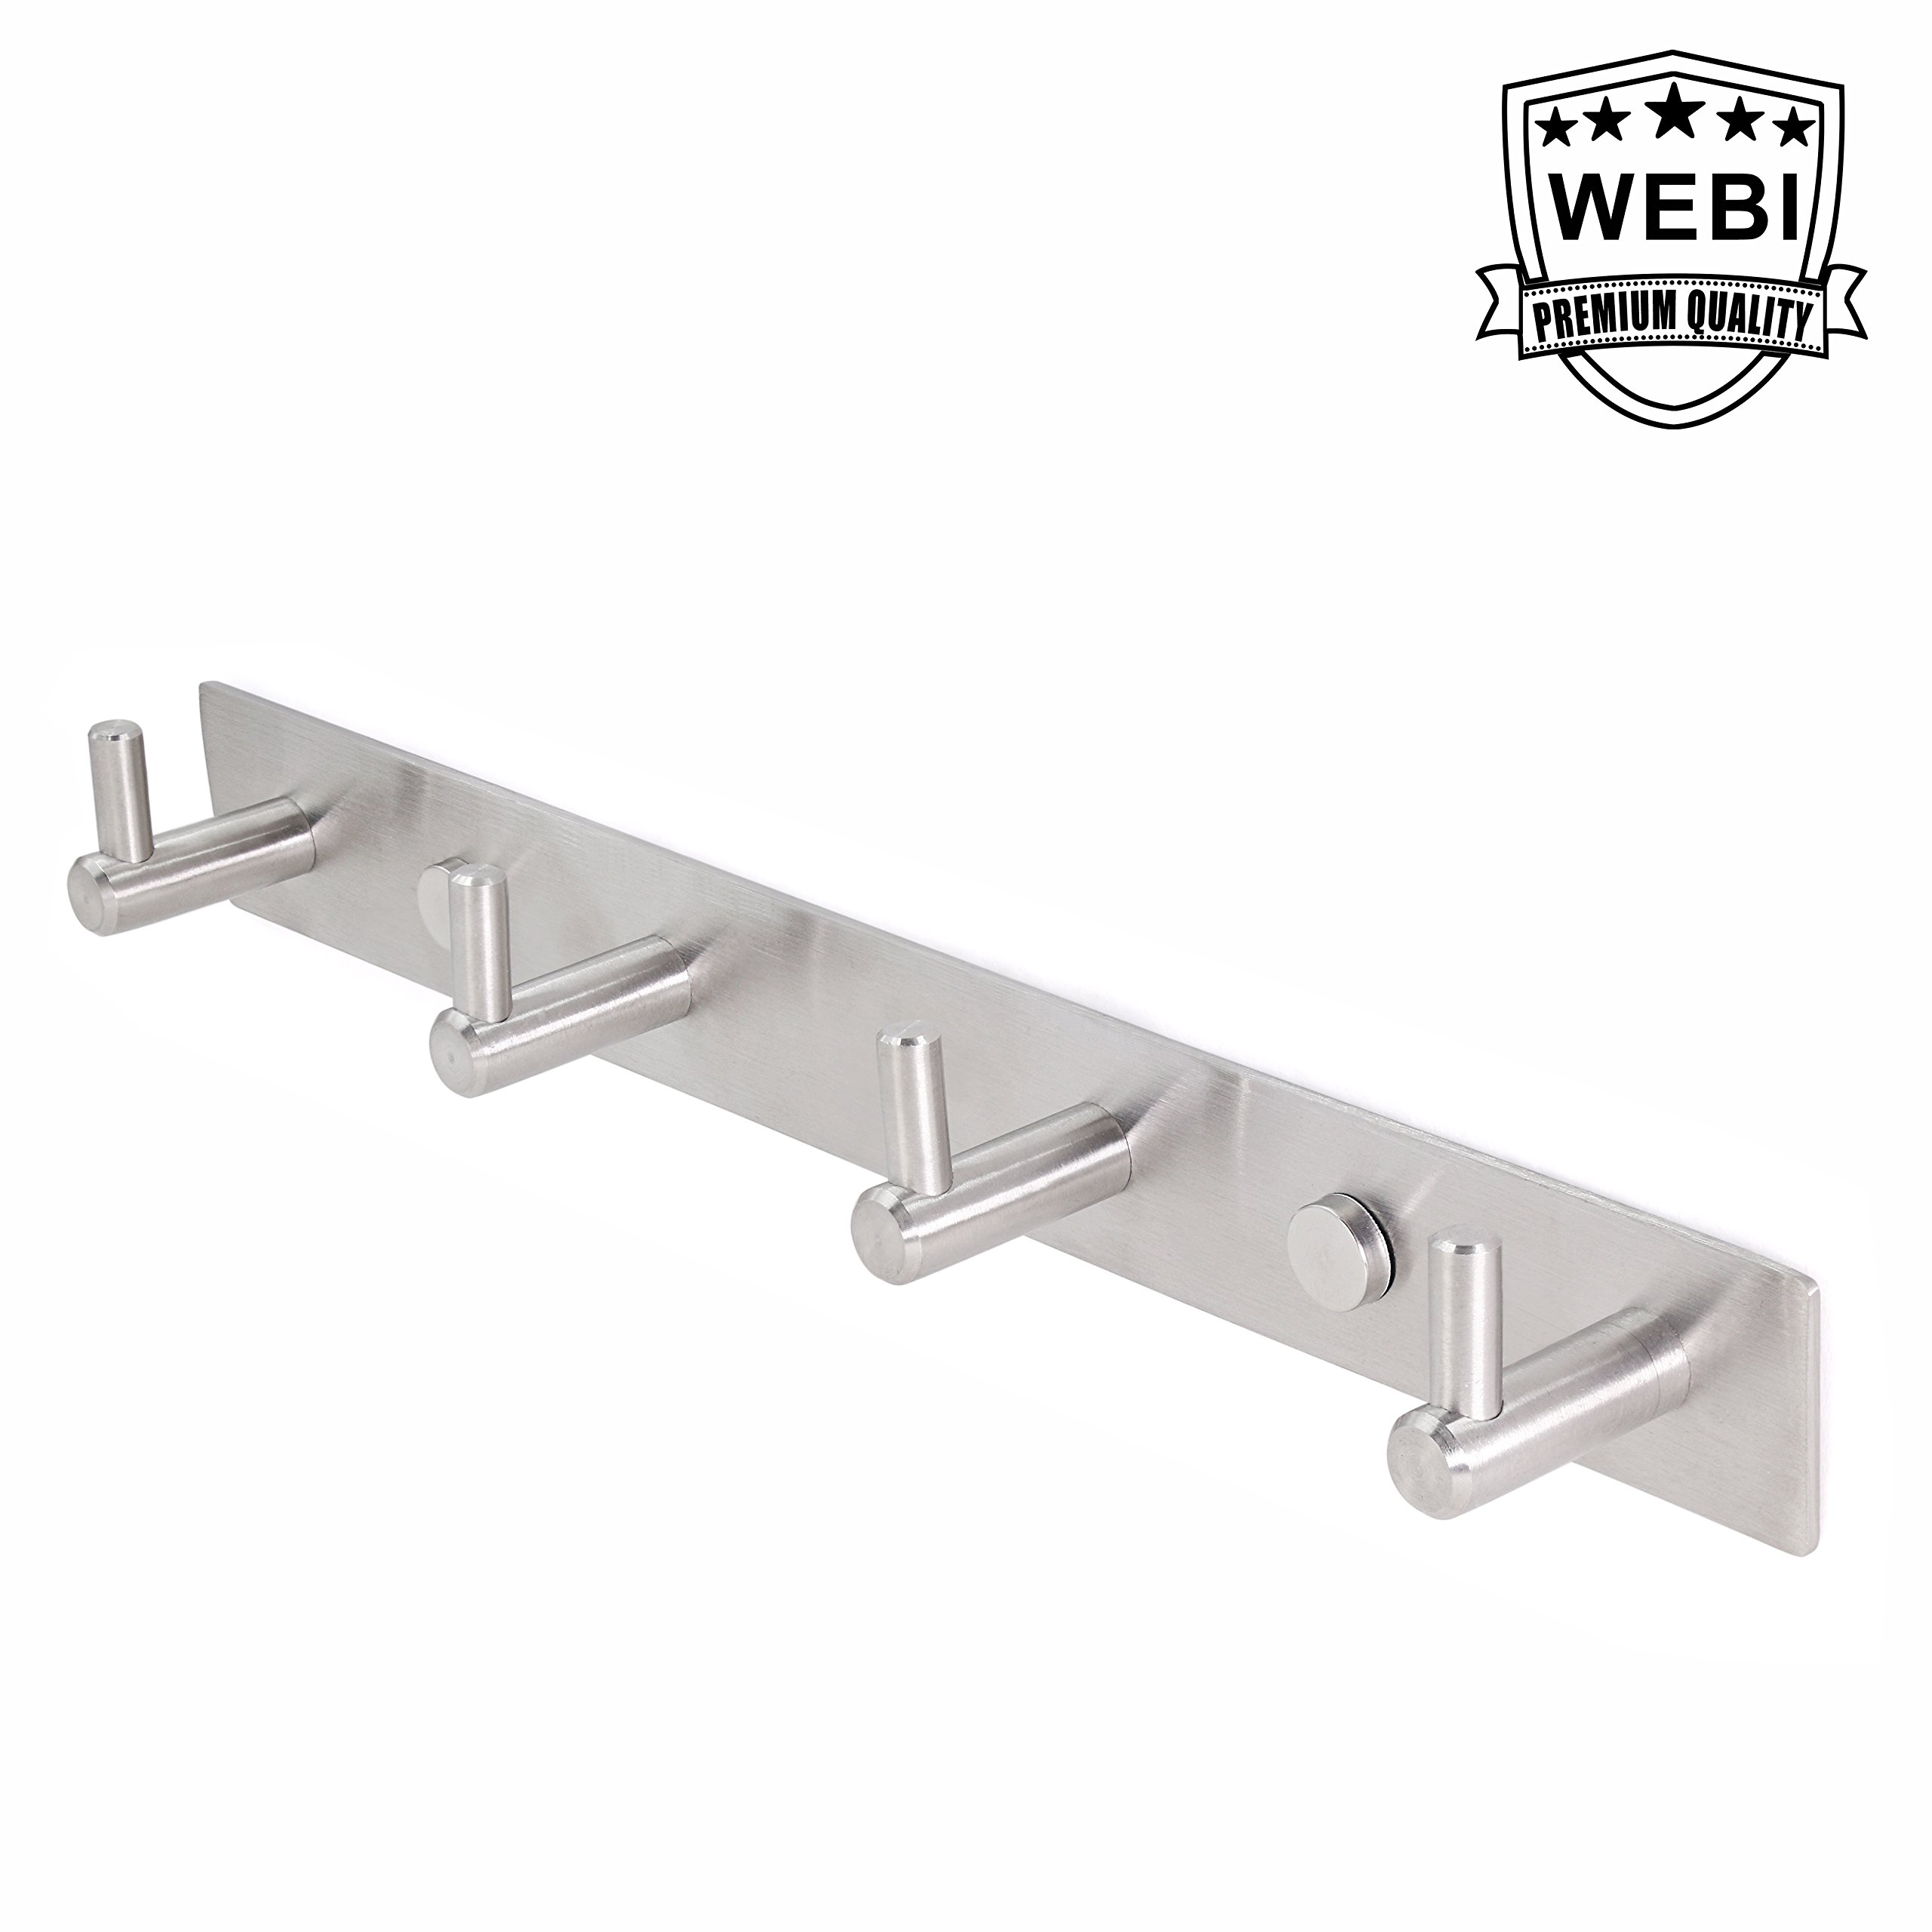 WEBI Heavy Duty SUS 304 Coat Bath Towel Hook Hanger Rail Bar with 4 Hooks, Brushed Finish, for Bedroom, Bathroom, Foyers, Hallways, Entryway, Great Home, Office Storage & Organization, L-YZ04 by WEBI